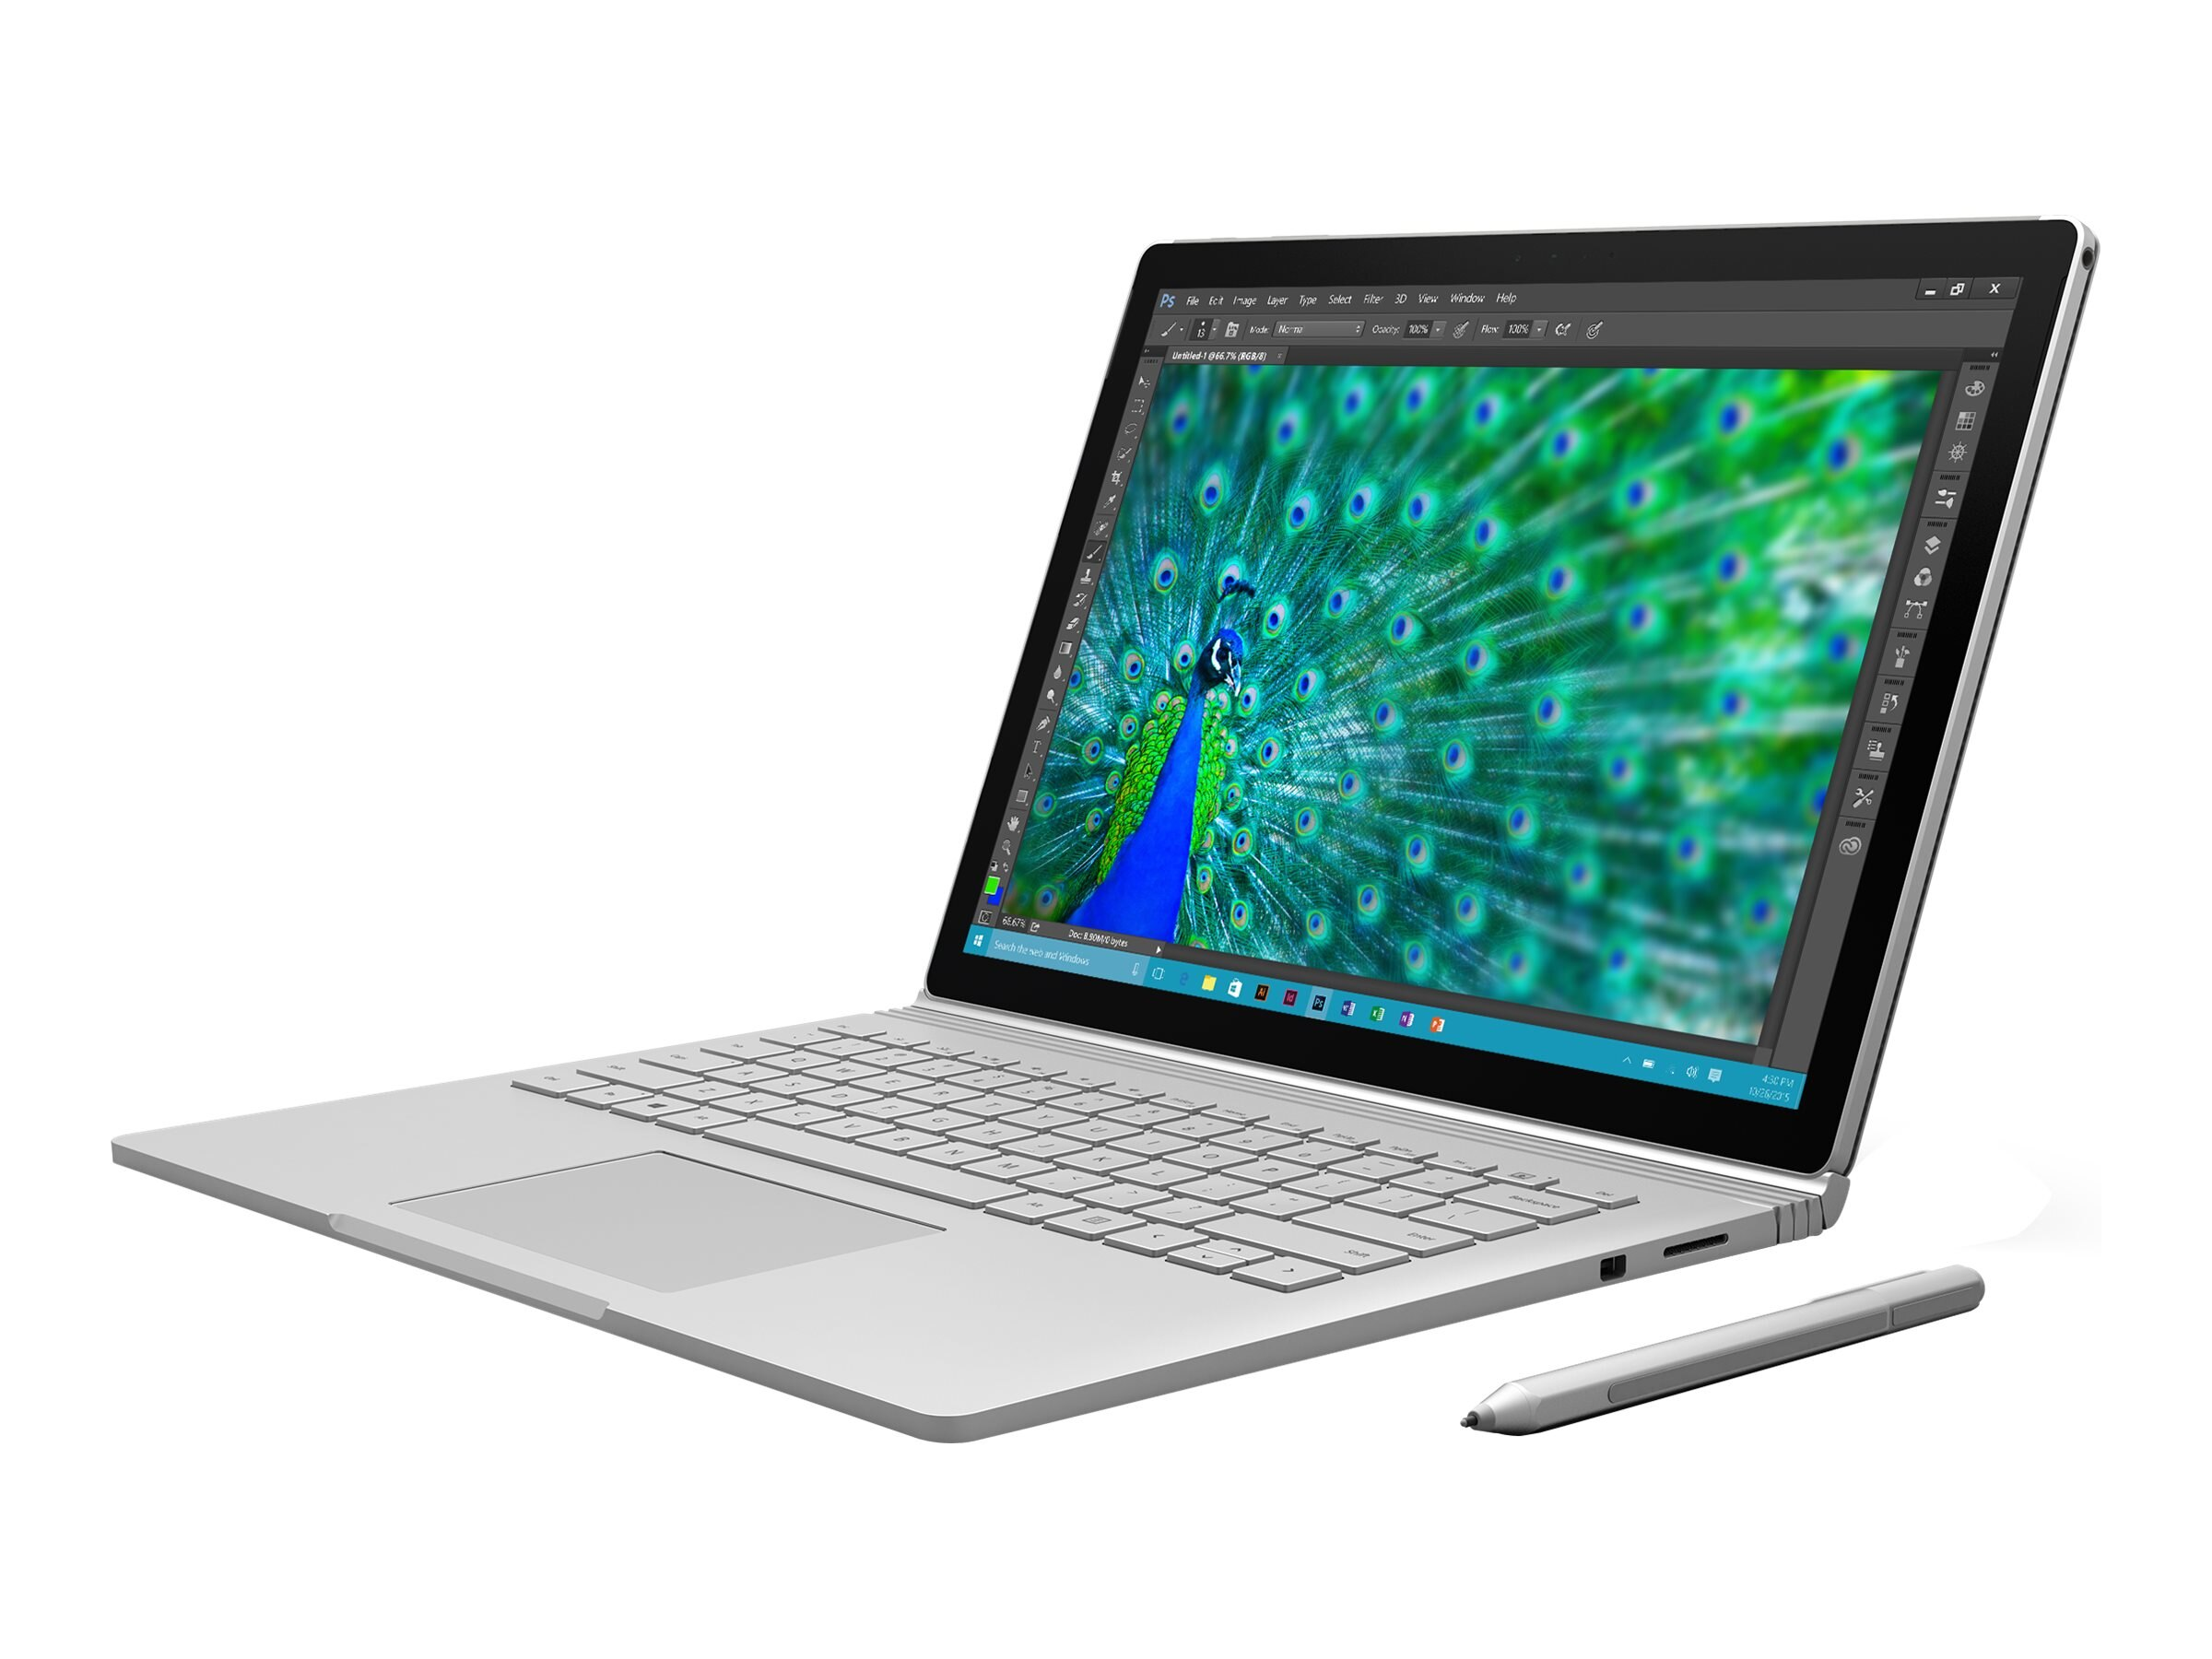 Microsoft Surface Book Core i5 8GB 128GB, SV7-00001, 30734195, Notebooks - Convertible